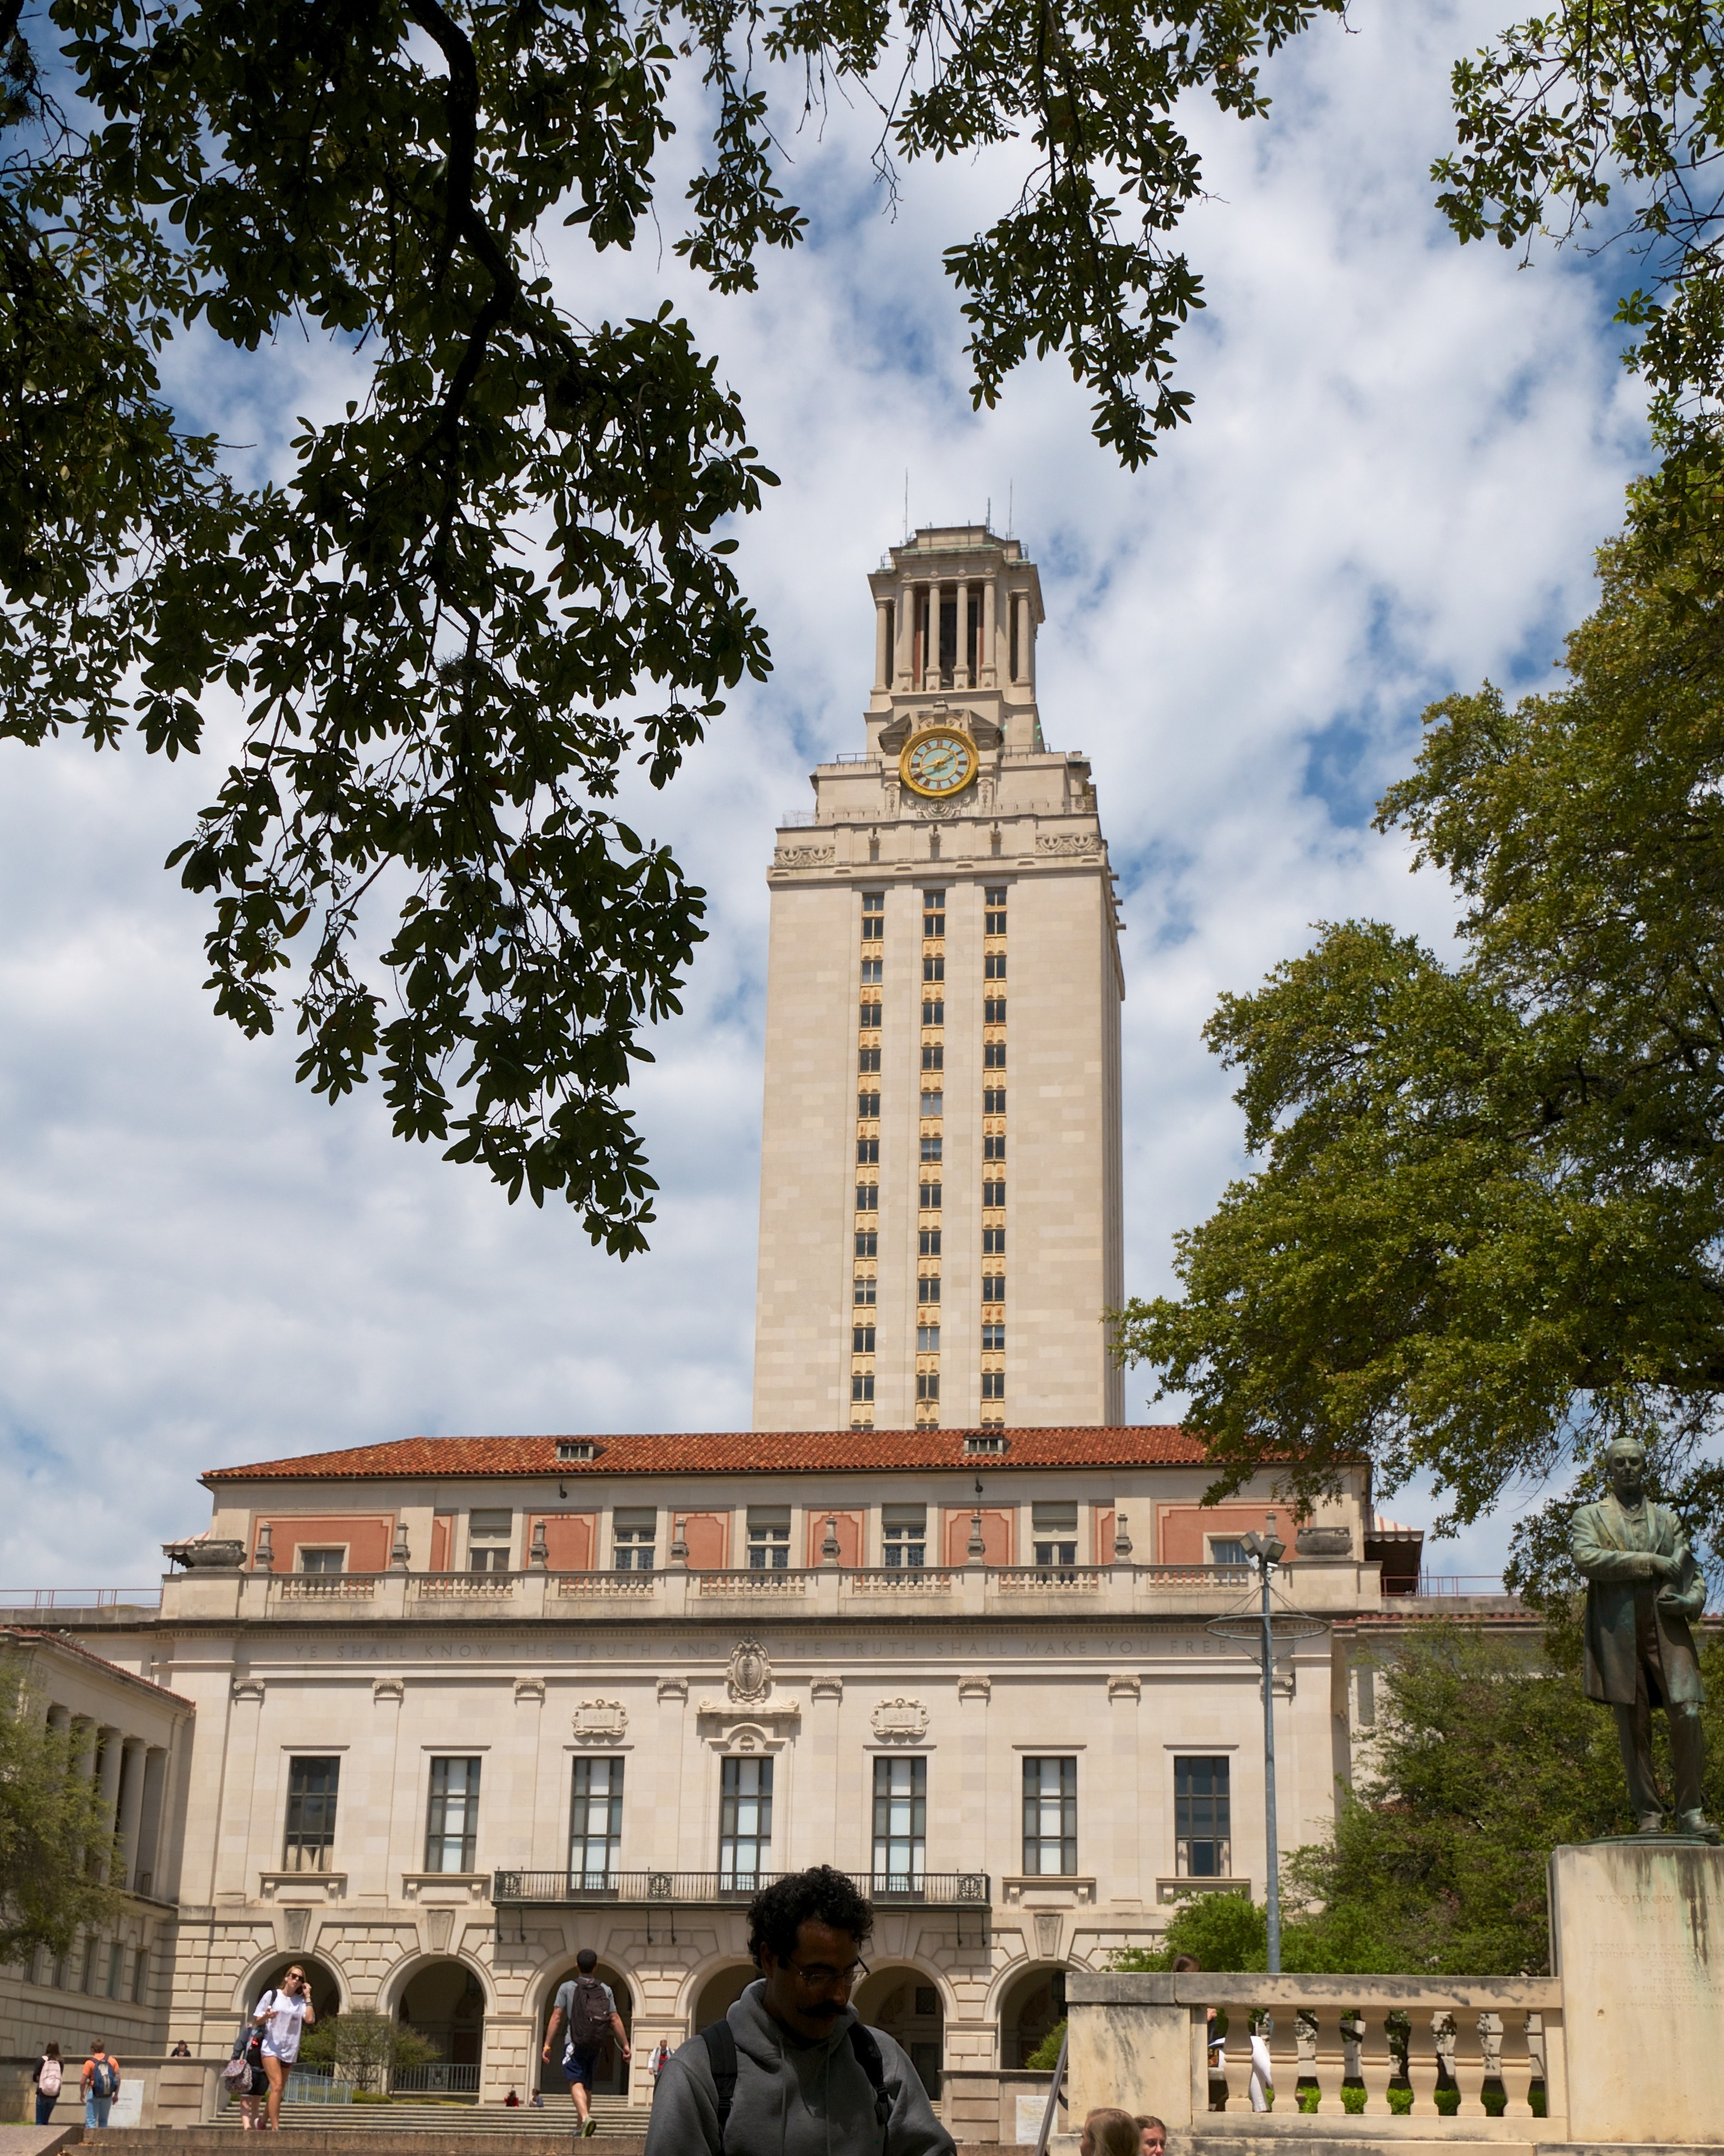 University of Texas Main Building and tower